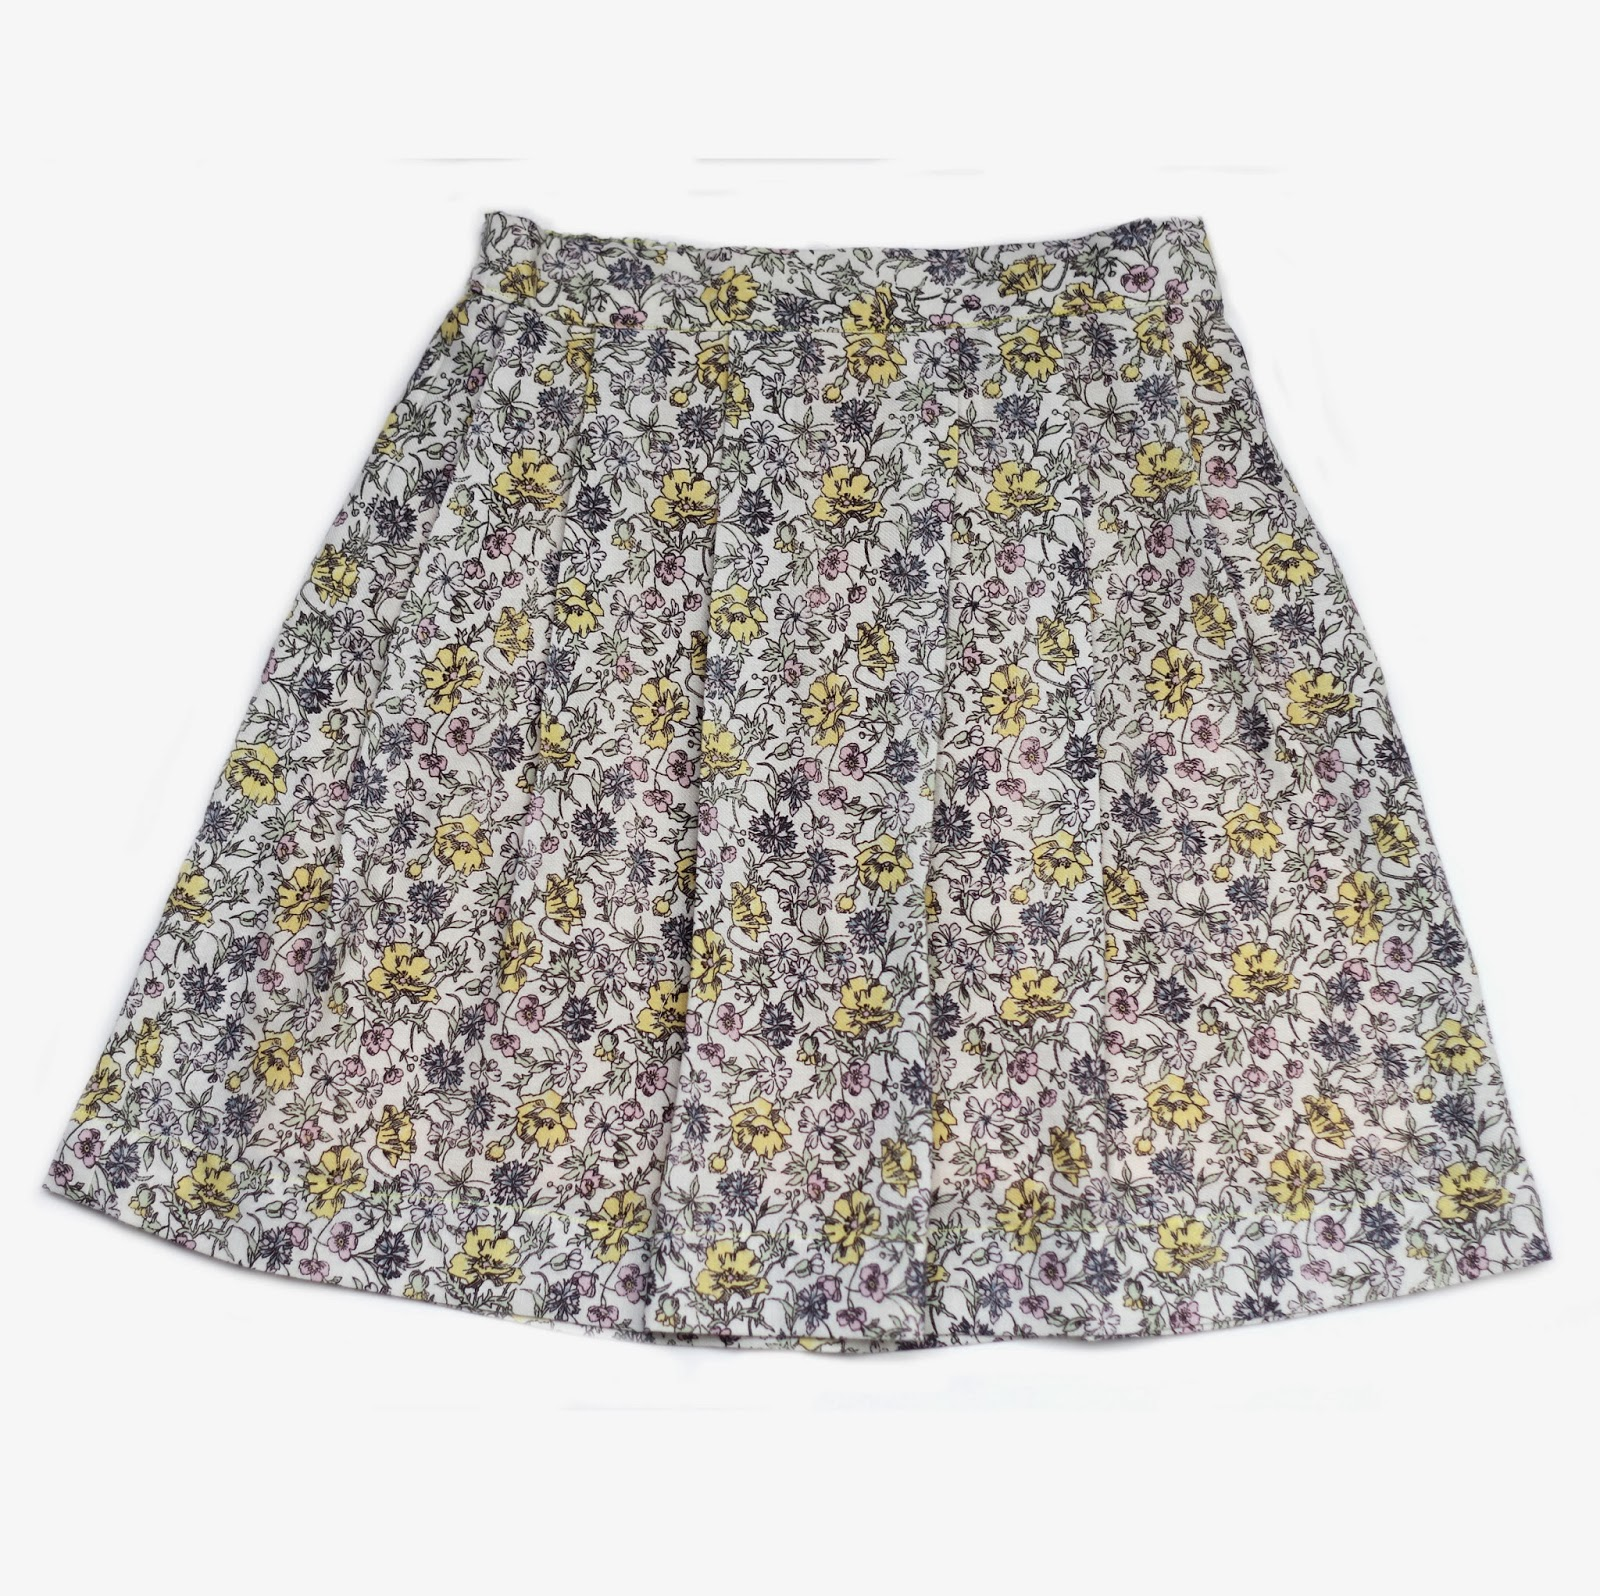 Poltam skirt pleated front and back elasticised